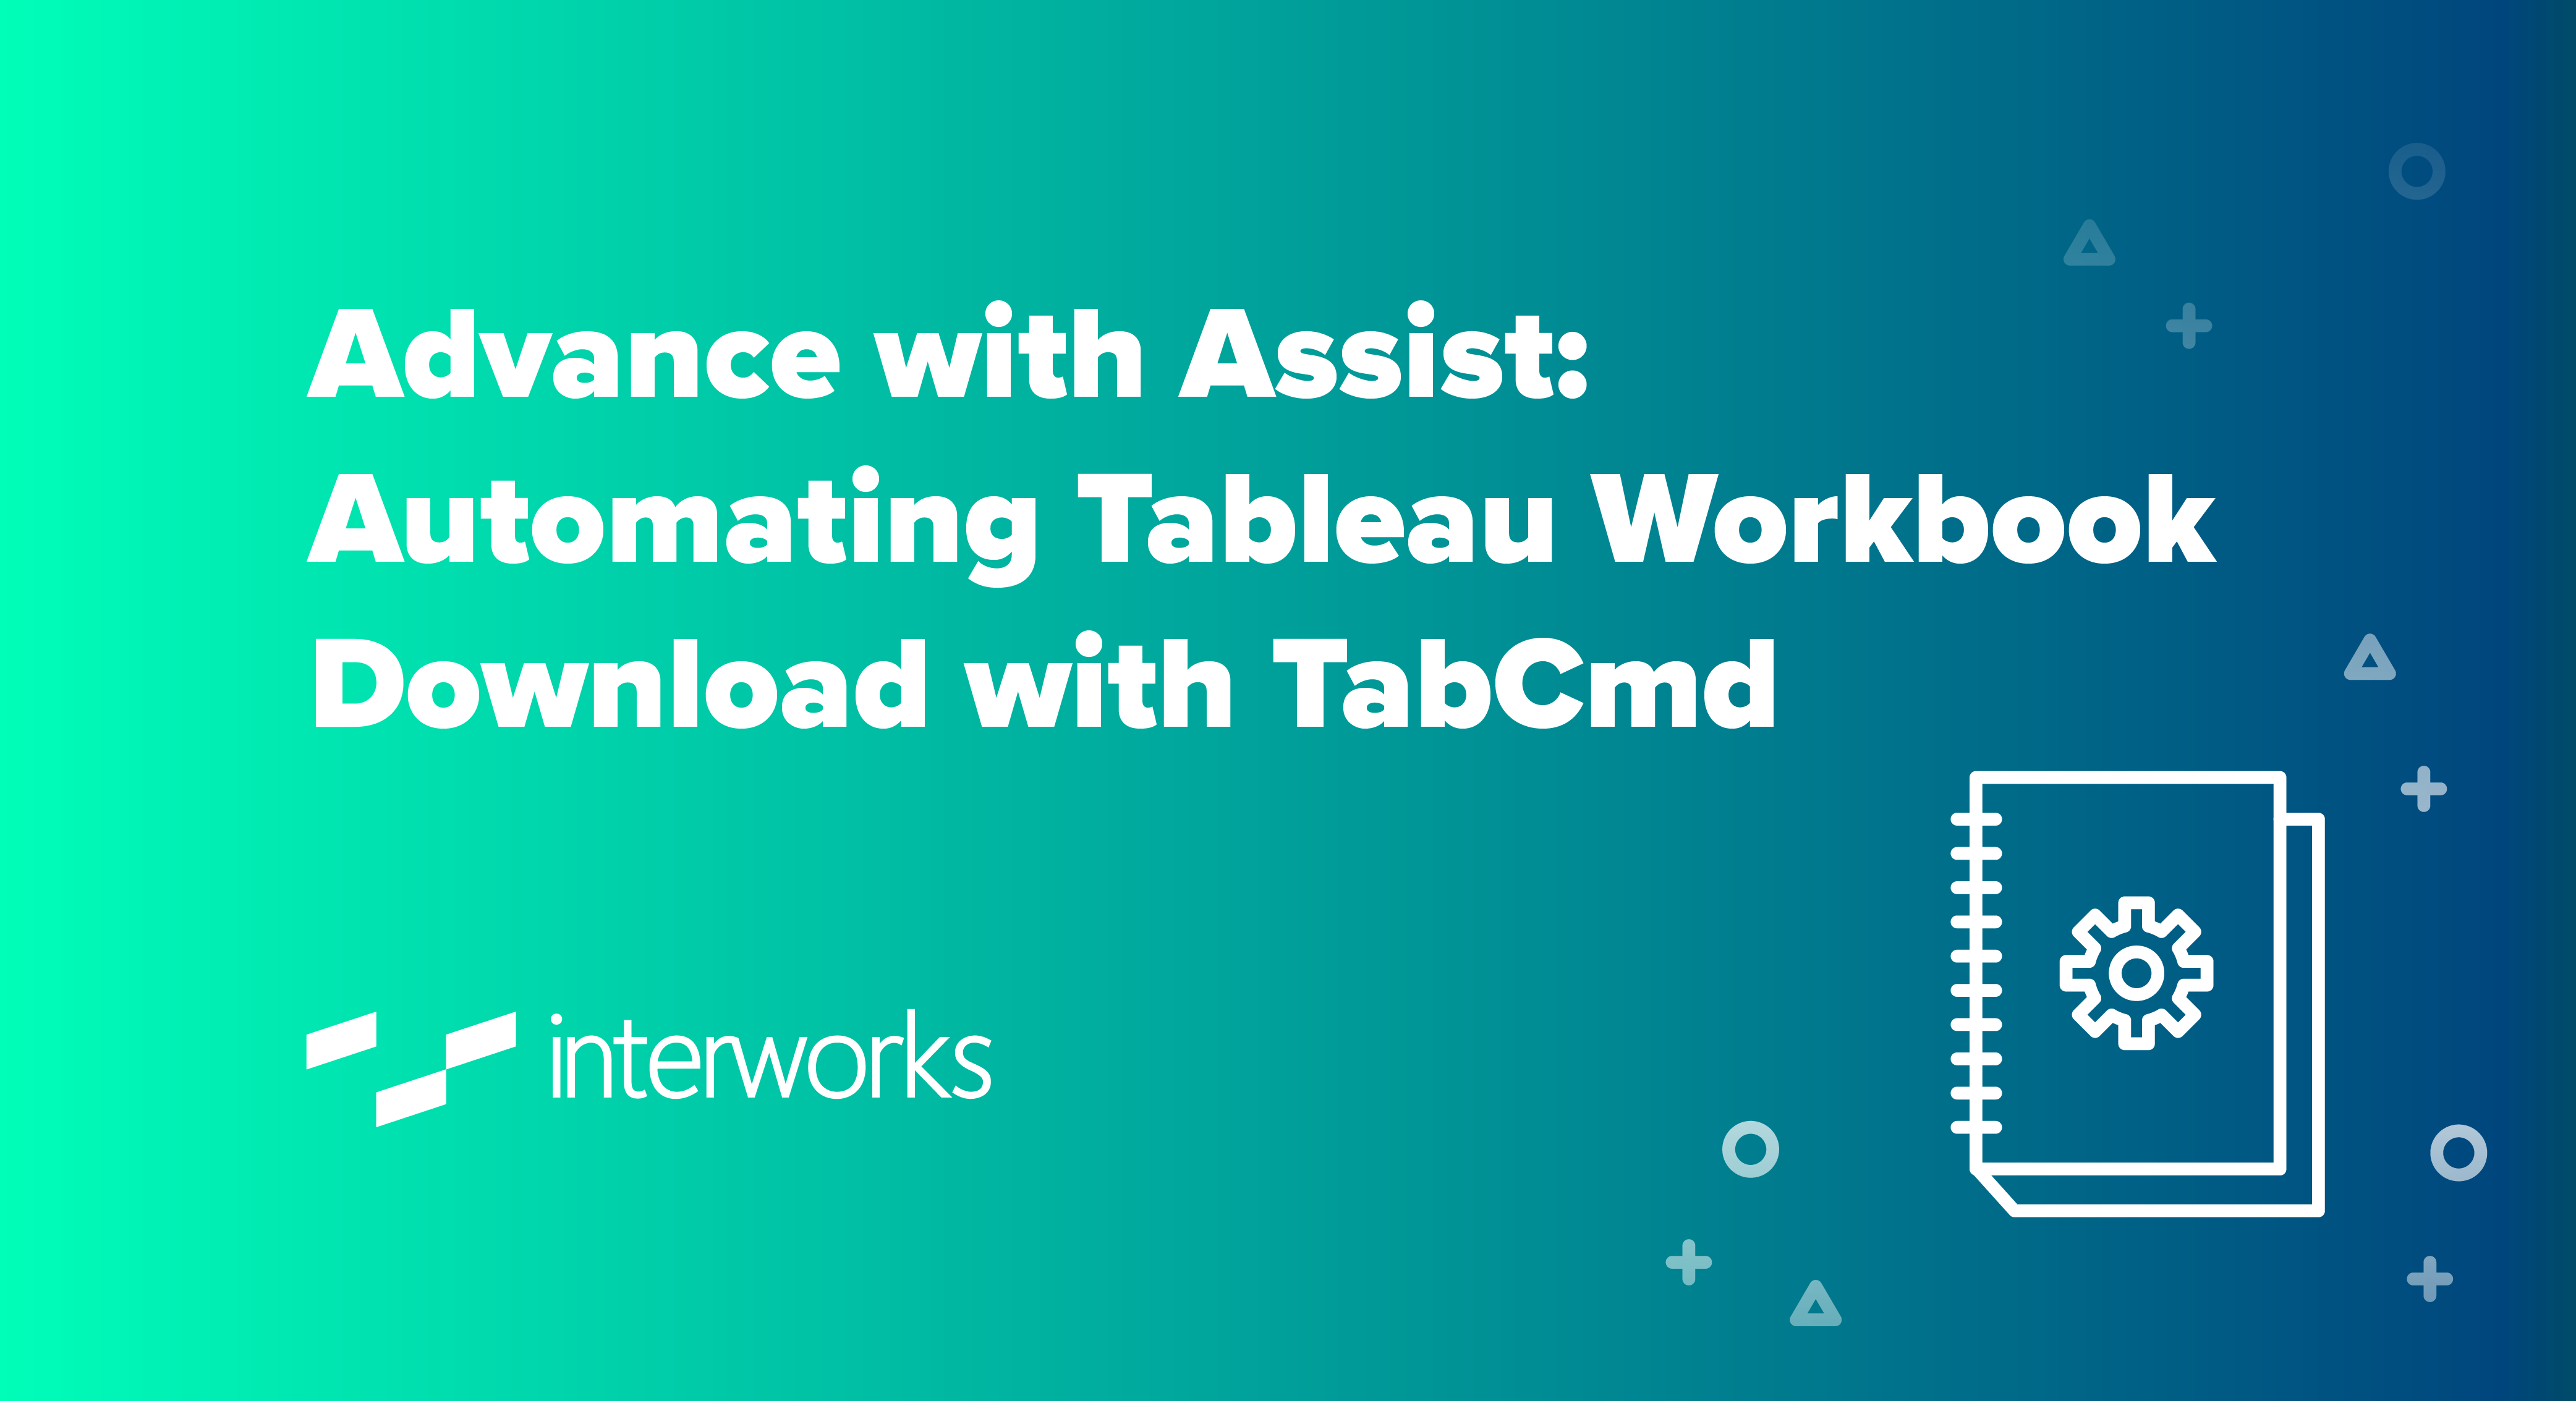 Advance with Assist: Automating Tableau Workbook Download with